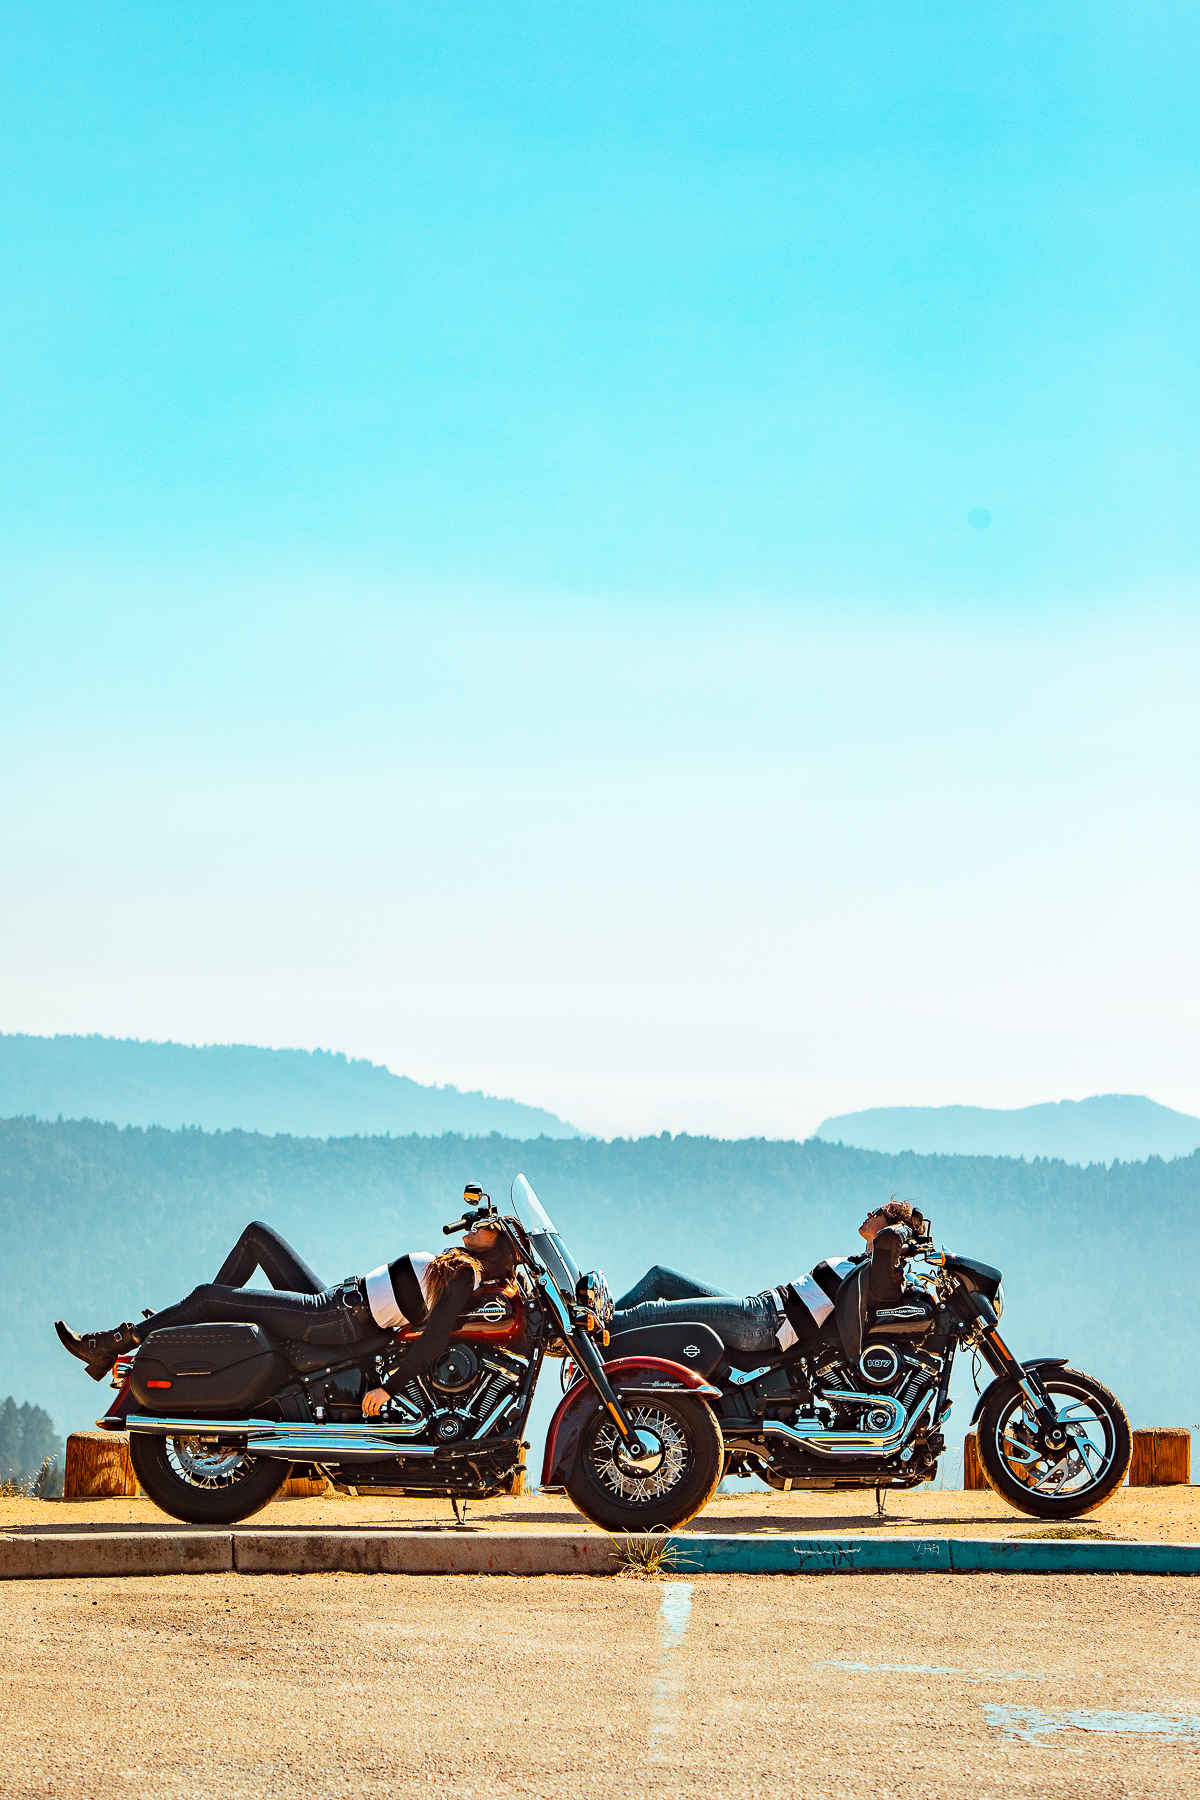 Familiar roads with fresh bikes and a new outlook. - My interest in motorcycles started in the Chrome days in San Francisco. My approach to capturing content on the fly and Outpost's growing client list allowed me to work with Harley-Davidson® to create content that demonstrated the value of passion for the things you can't get from behind a desk or in front of a screen.While my point of view has grown and broadened, my direction has remained constant – look inward to discover your interest and look outward for like-minded individuals to make things happen.